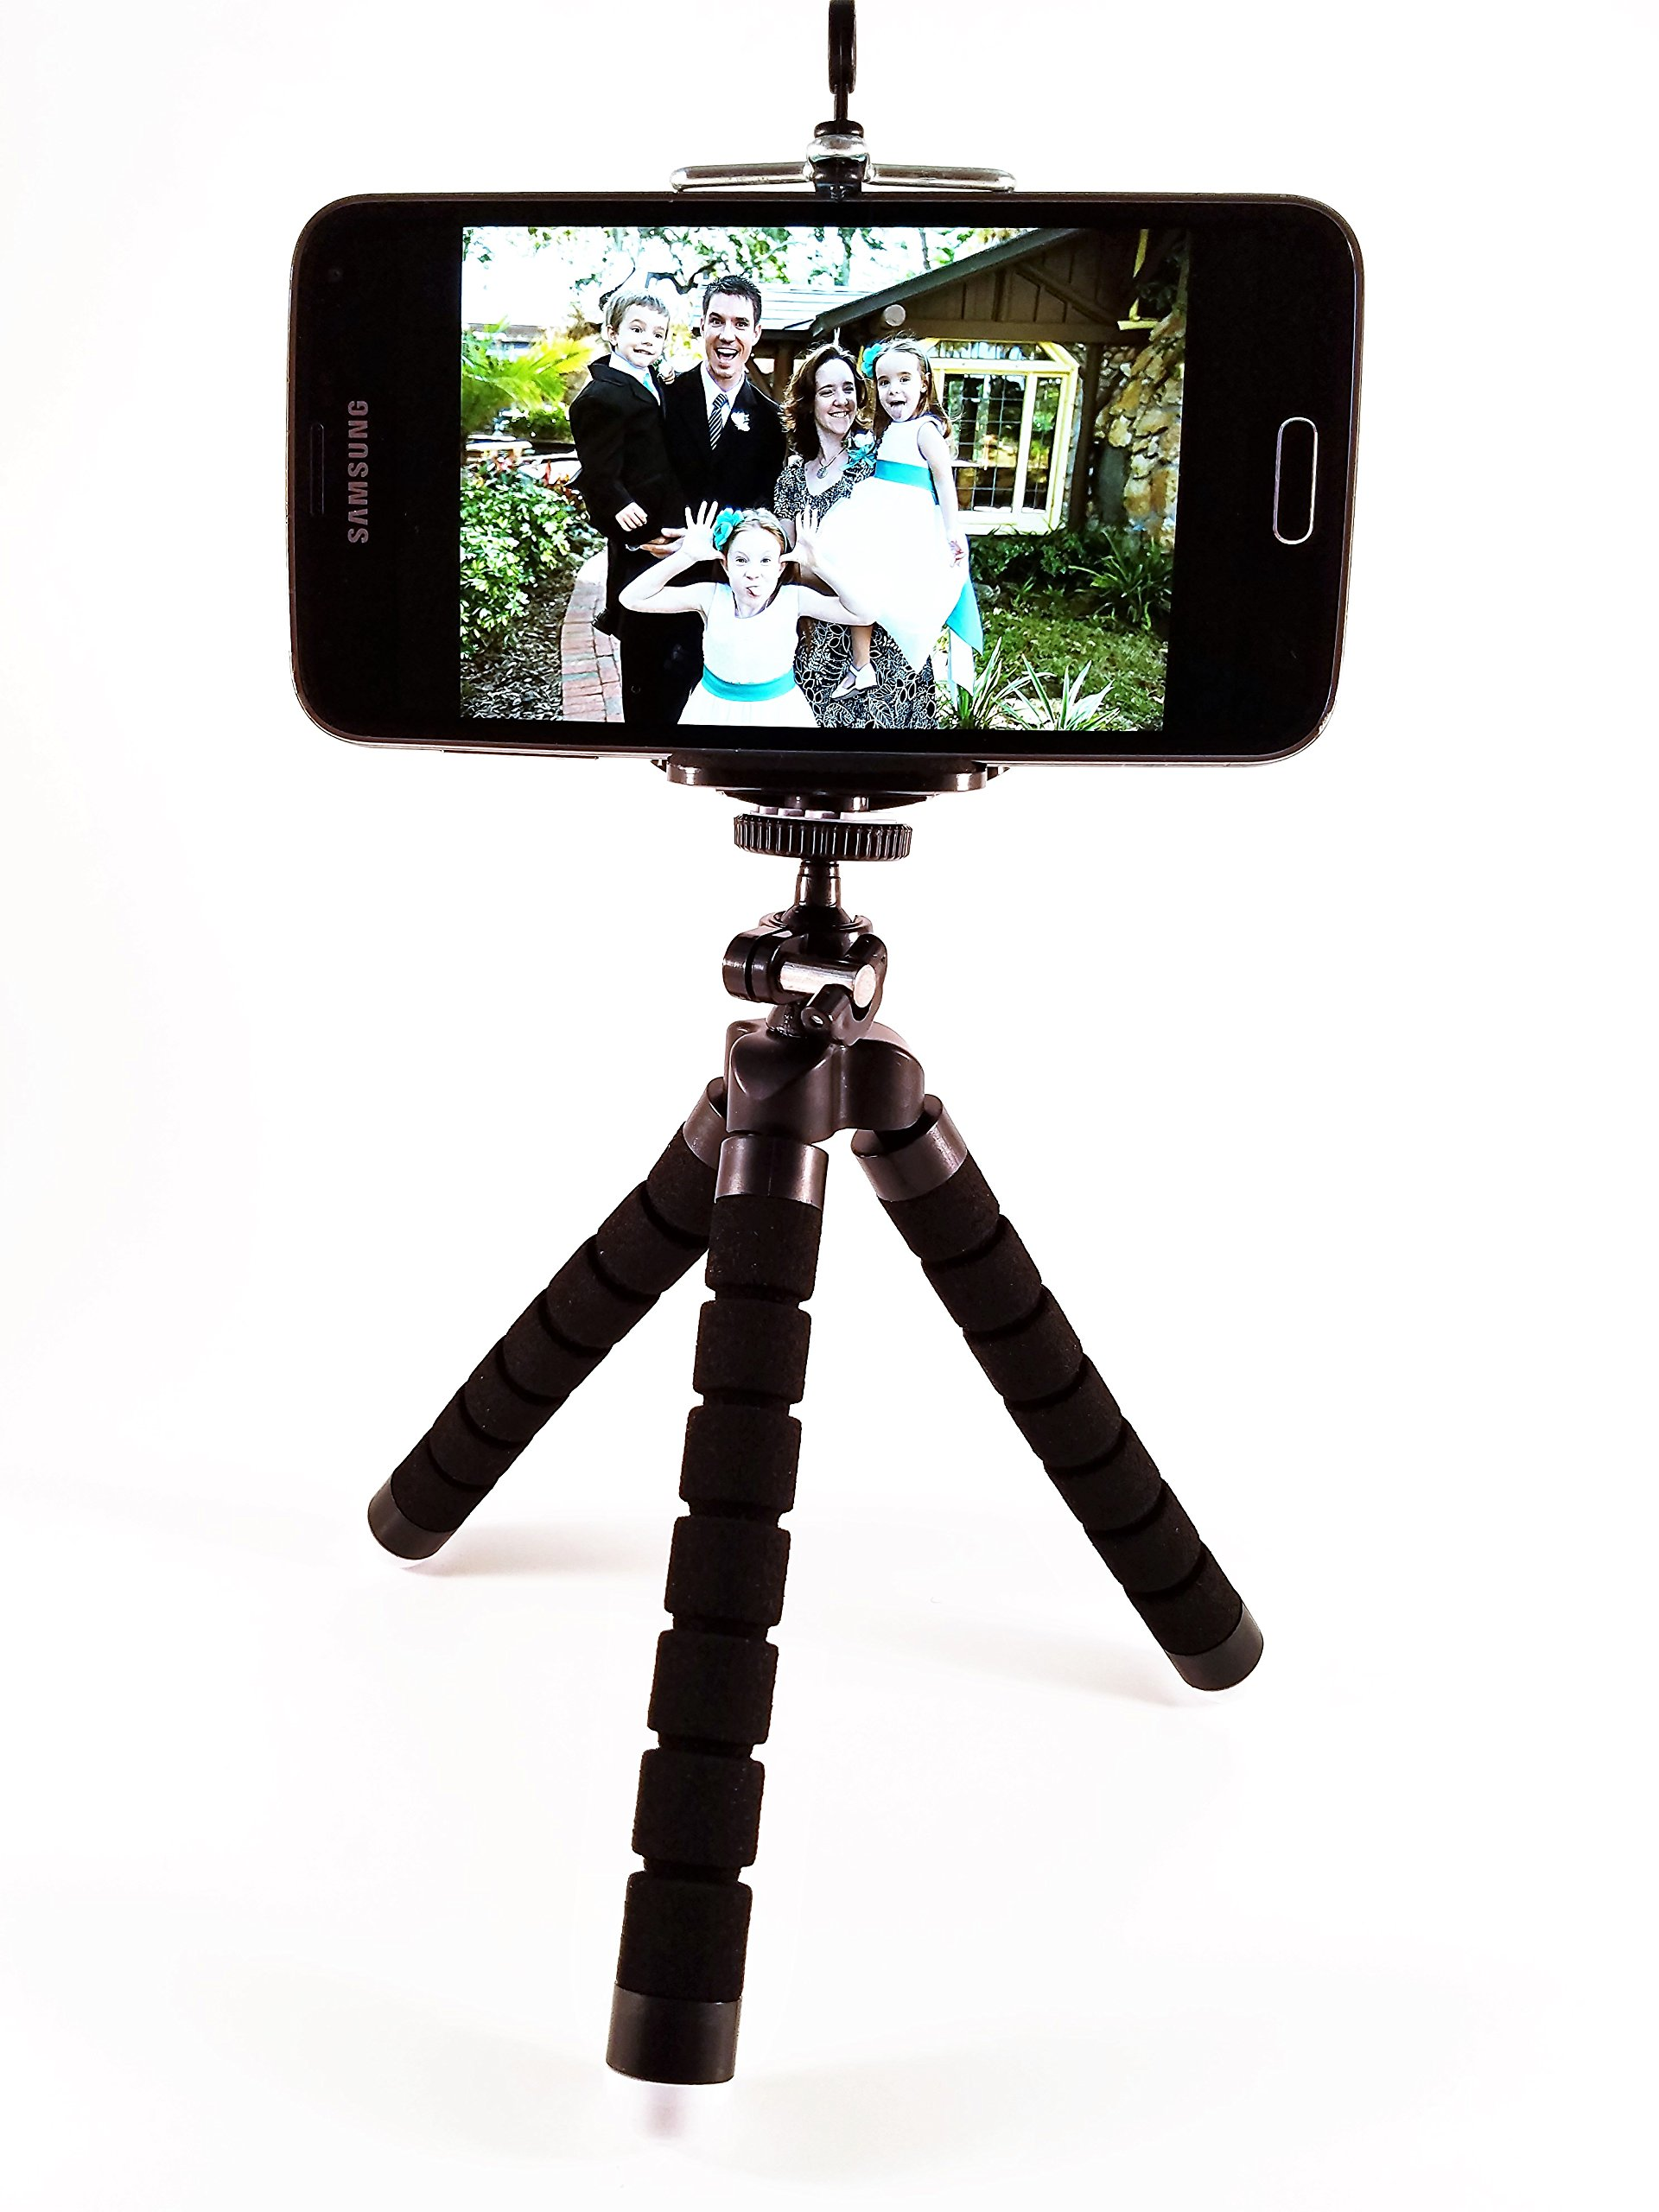 Deluxe Flexible Mini Tripod for Iphone, Samsung Galaxy with Wireless Shutter Remote, Carrying Case and Free Smartphone Photography eBook - Universal Camera Phone Stand, Holder